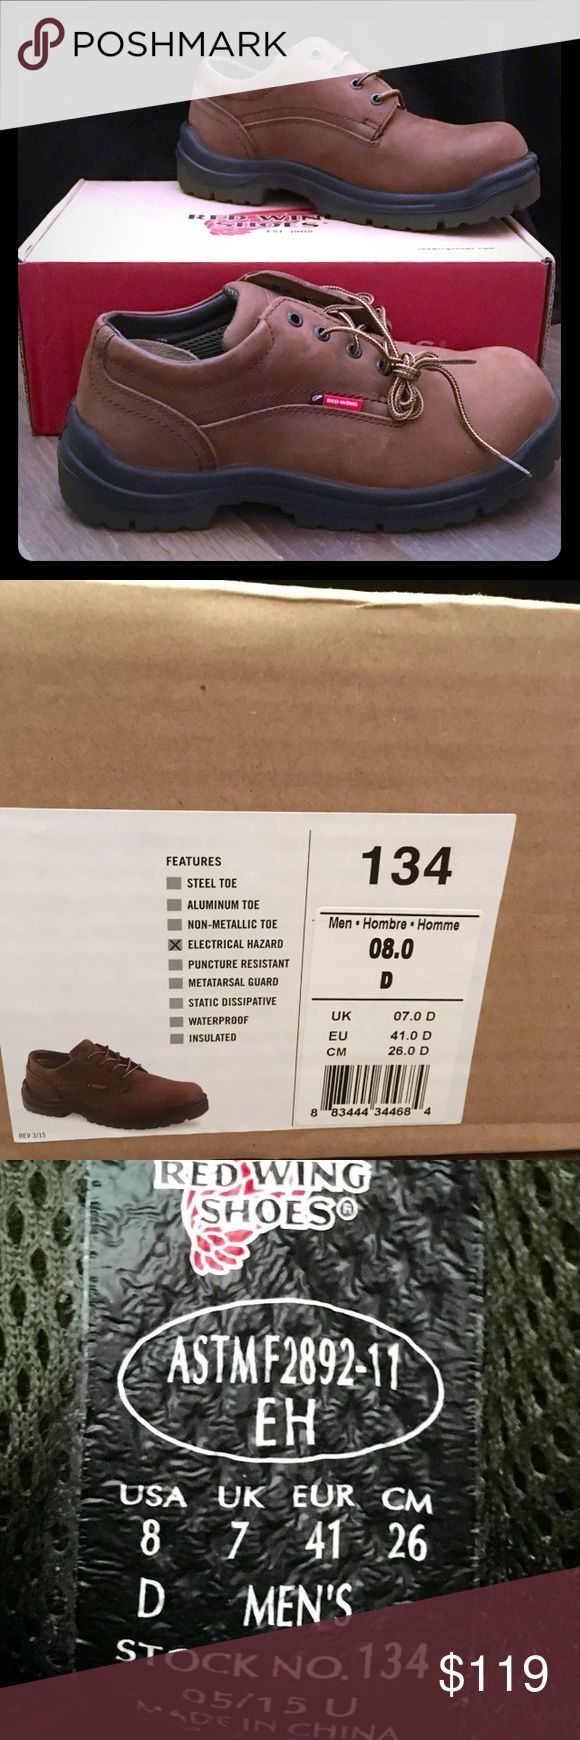 Red Wing Shoes Oxford Size 8 #4479 brown Men's Red Wing Shoes Oxford, Size 8, #4479 in brown. New in box! Red Wing Shoes Shoes Flats & Loafers